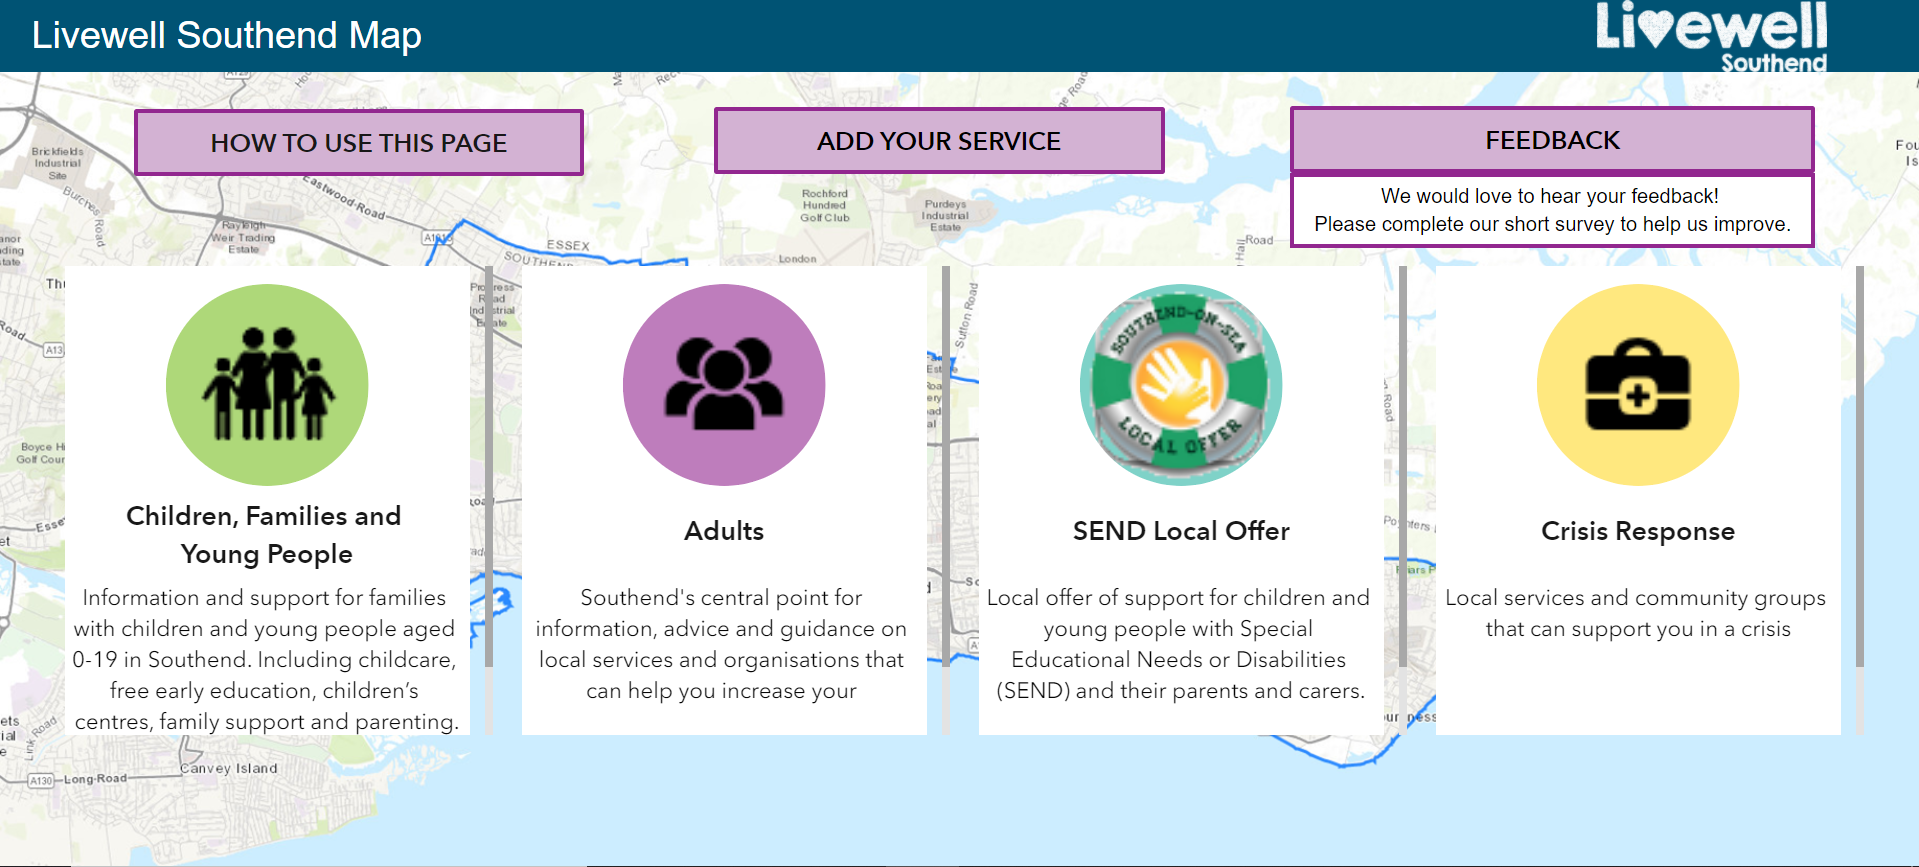 picture of the Livewell interactive map and the main categories